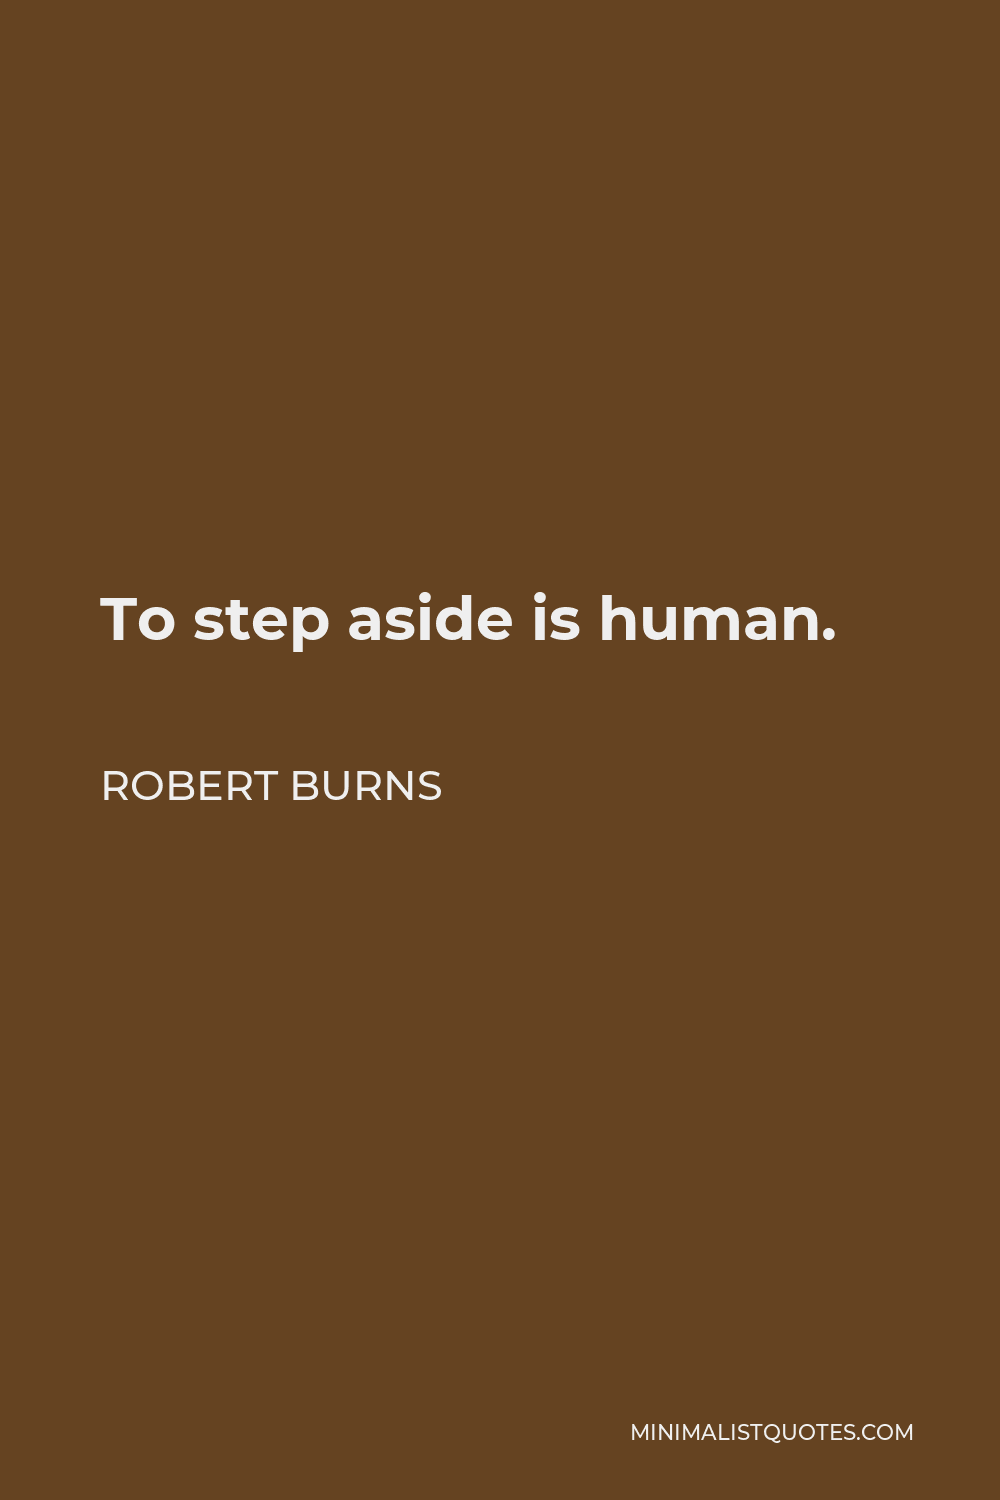 Robert Burns Quote - To step aside is human.